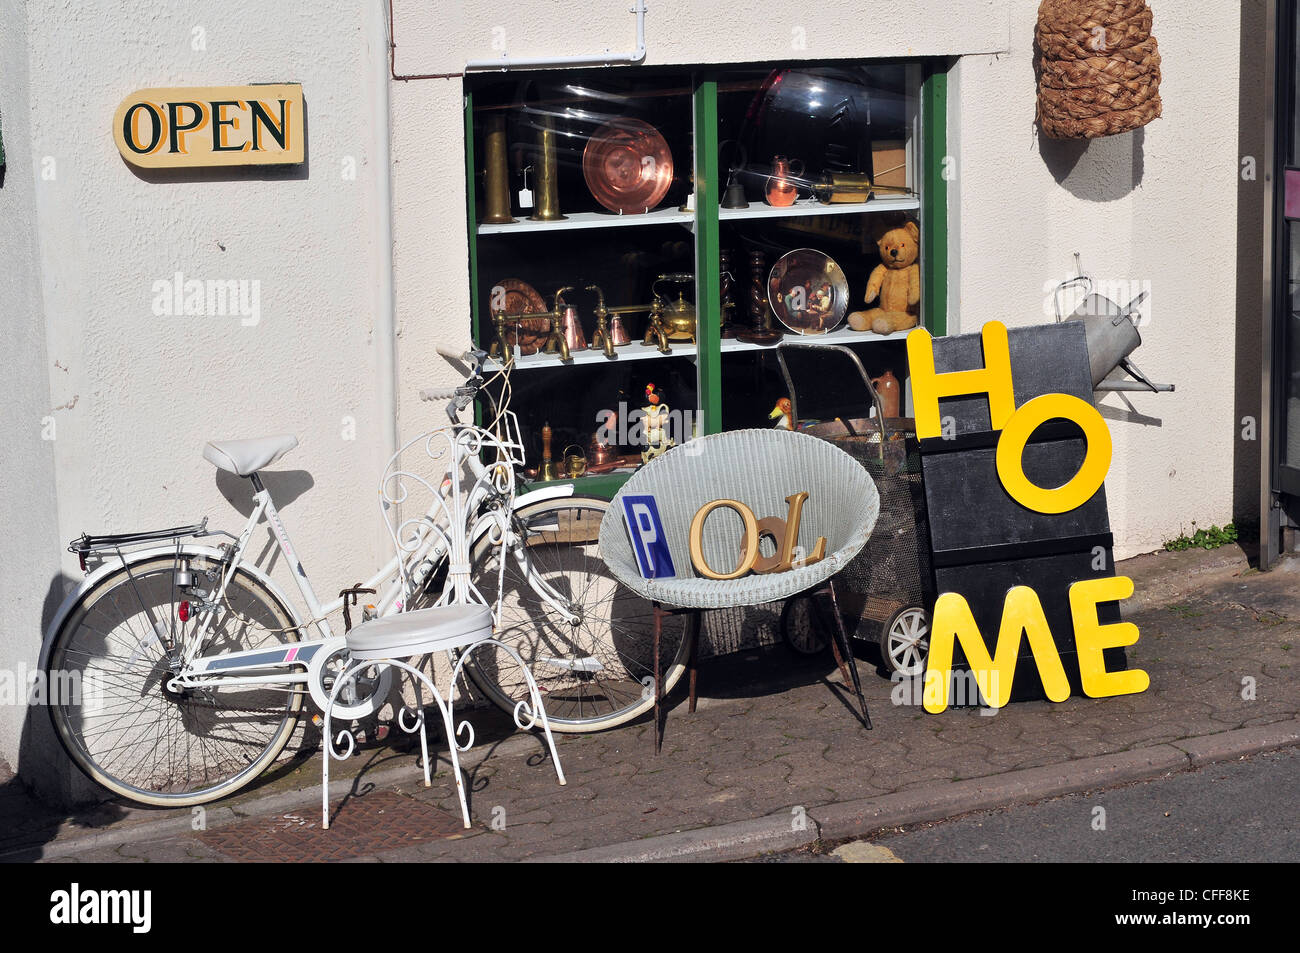 Collectible goods displayed on the pavement outside a shop in Hay-on-Wye - Stock Image